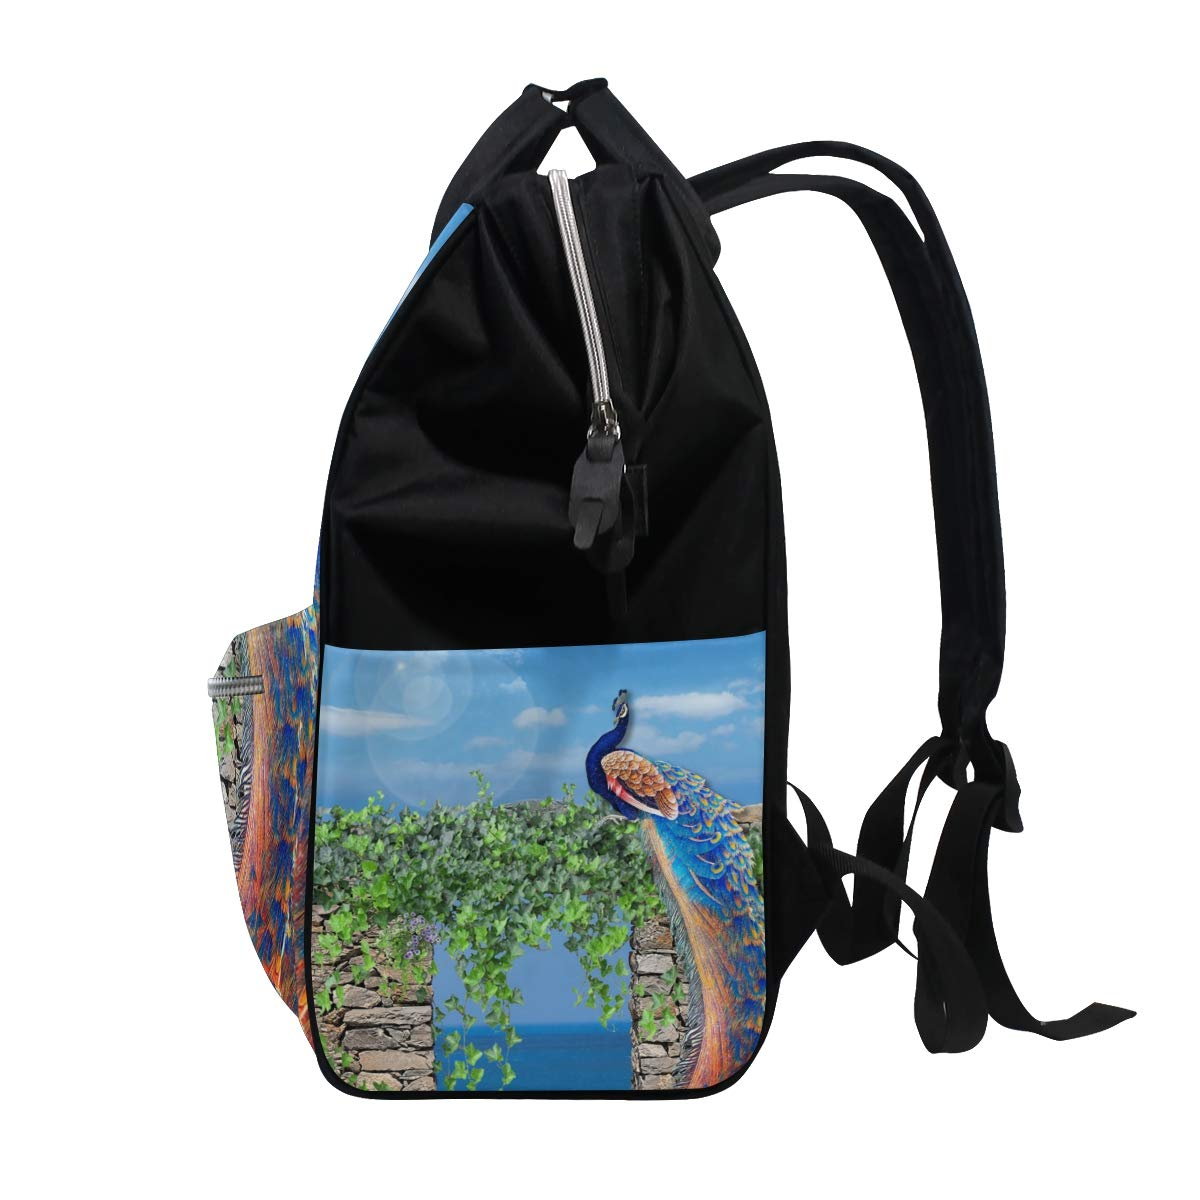 imobaby Peacock On The Stone Wall Changing Bags Large Capacity Handbags Canvas Shoulder Bag Backpack